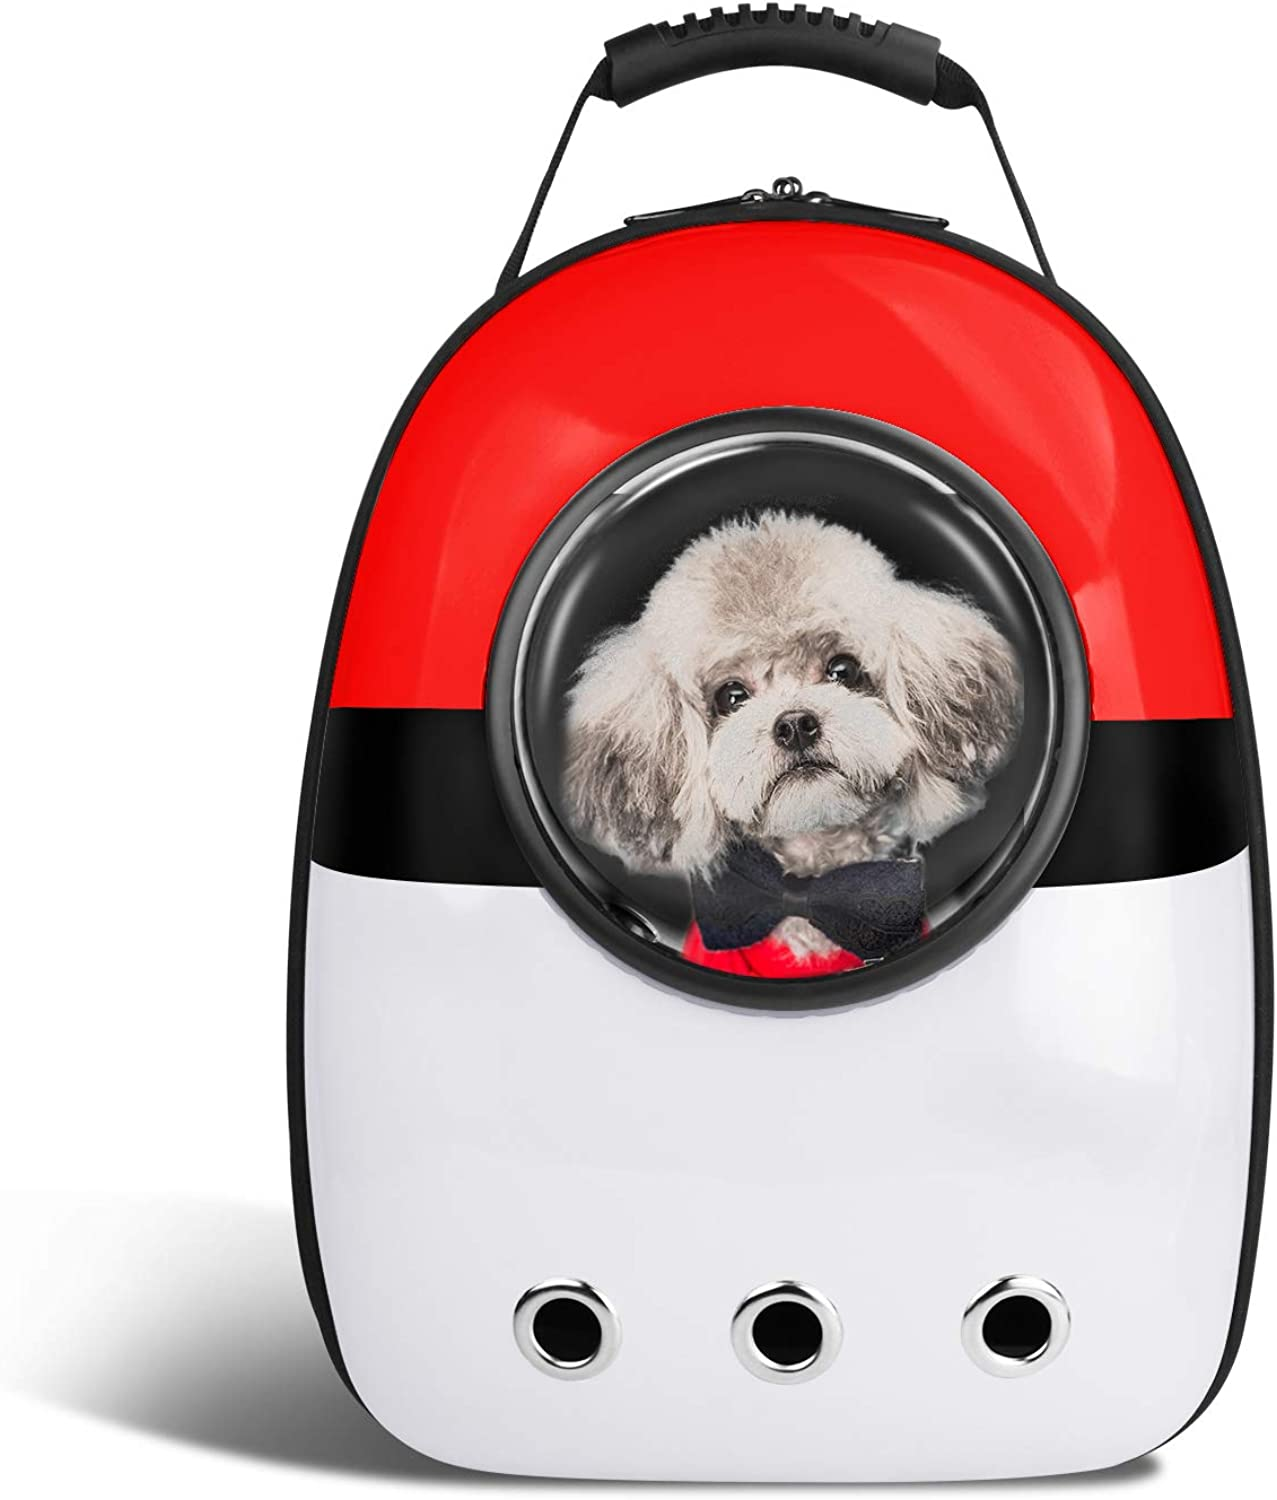 Blitzwolf Anzone Pet Portable Space Capsule Carrier Backpack,Pet Bubble Window Traveller Knapsack Waterproof Lightweight Handbag for Cats Small Dogs & Petite AnimalsRed&White